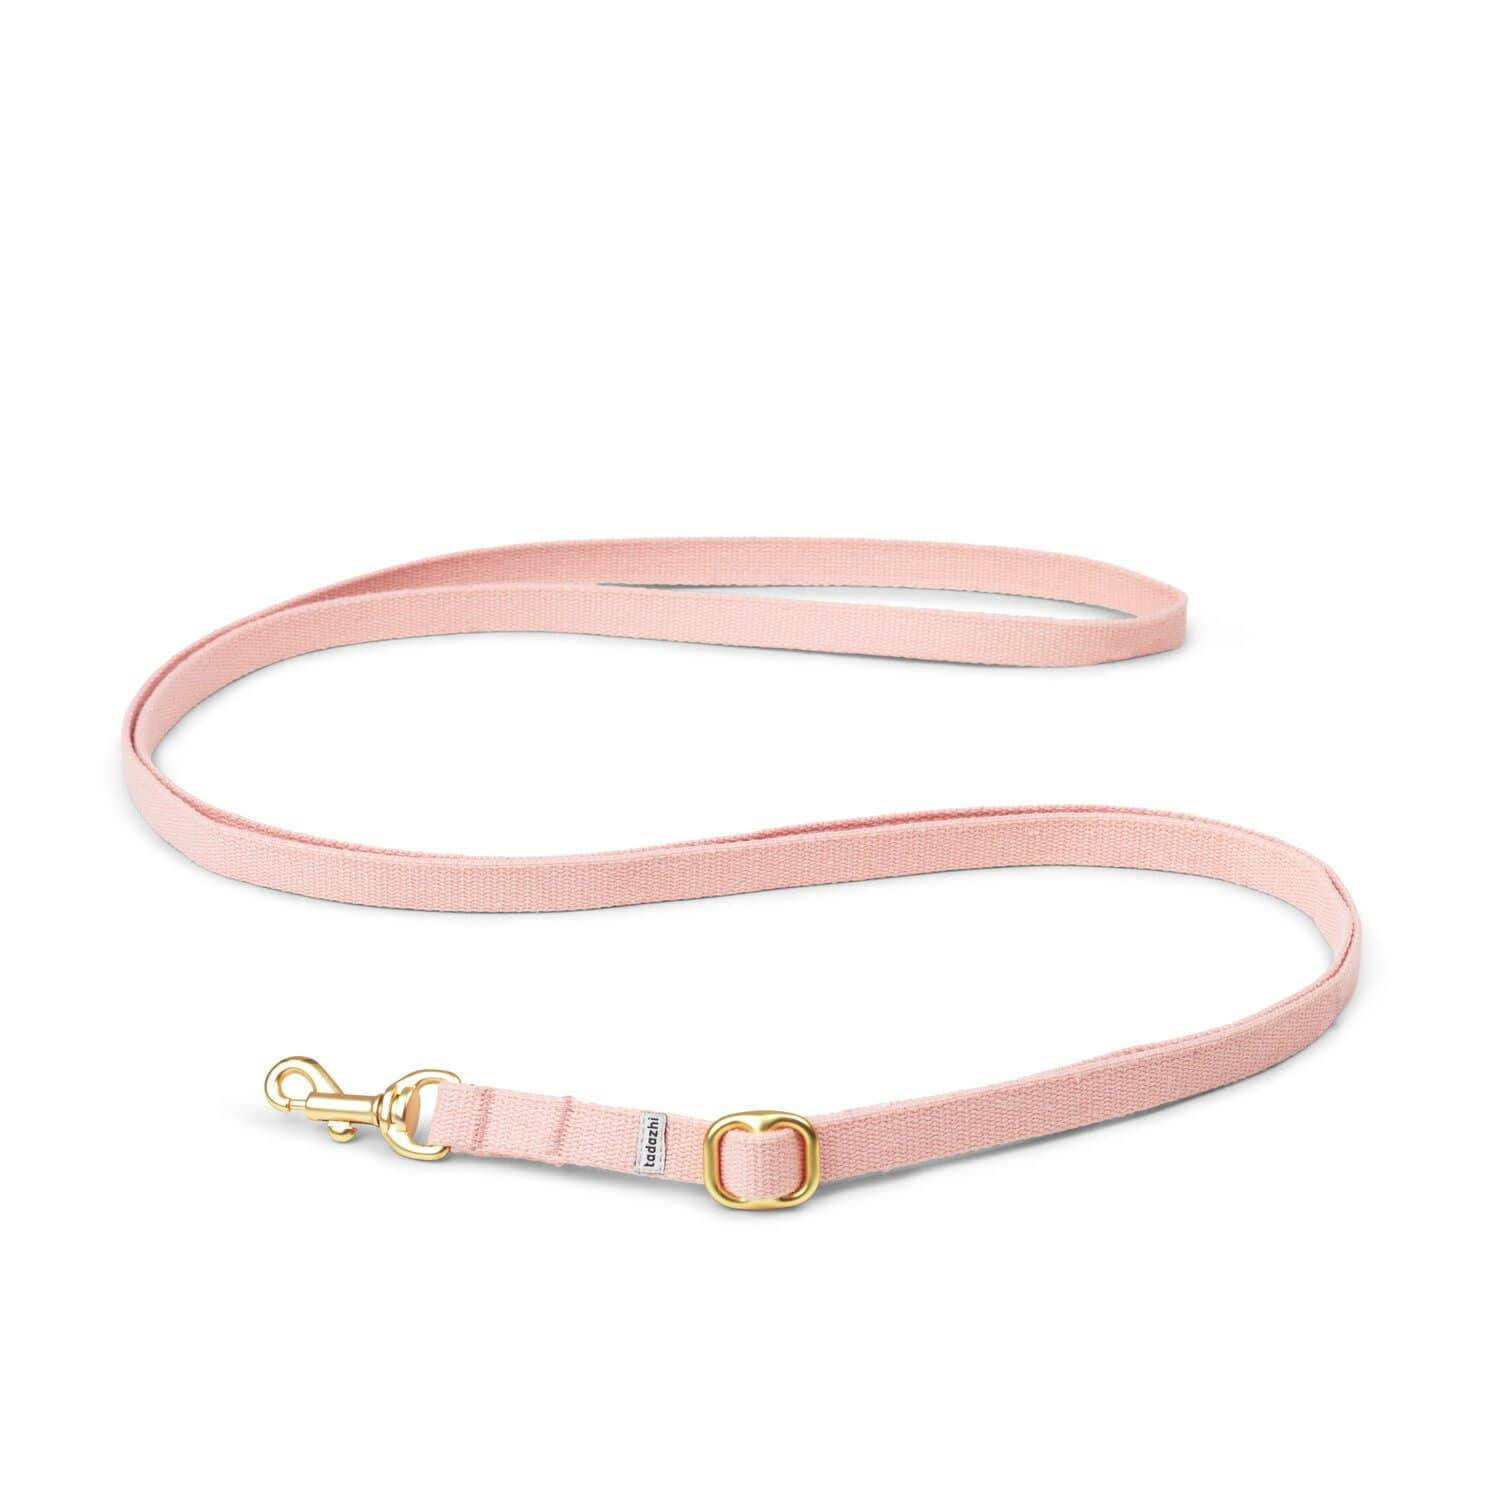 Powder Pink - Adjustable Cotton Lead & Solid Brass Hardware - Holler Brighton